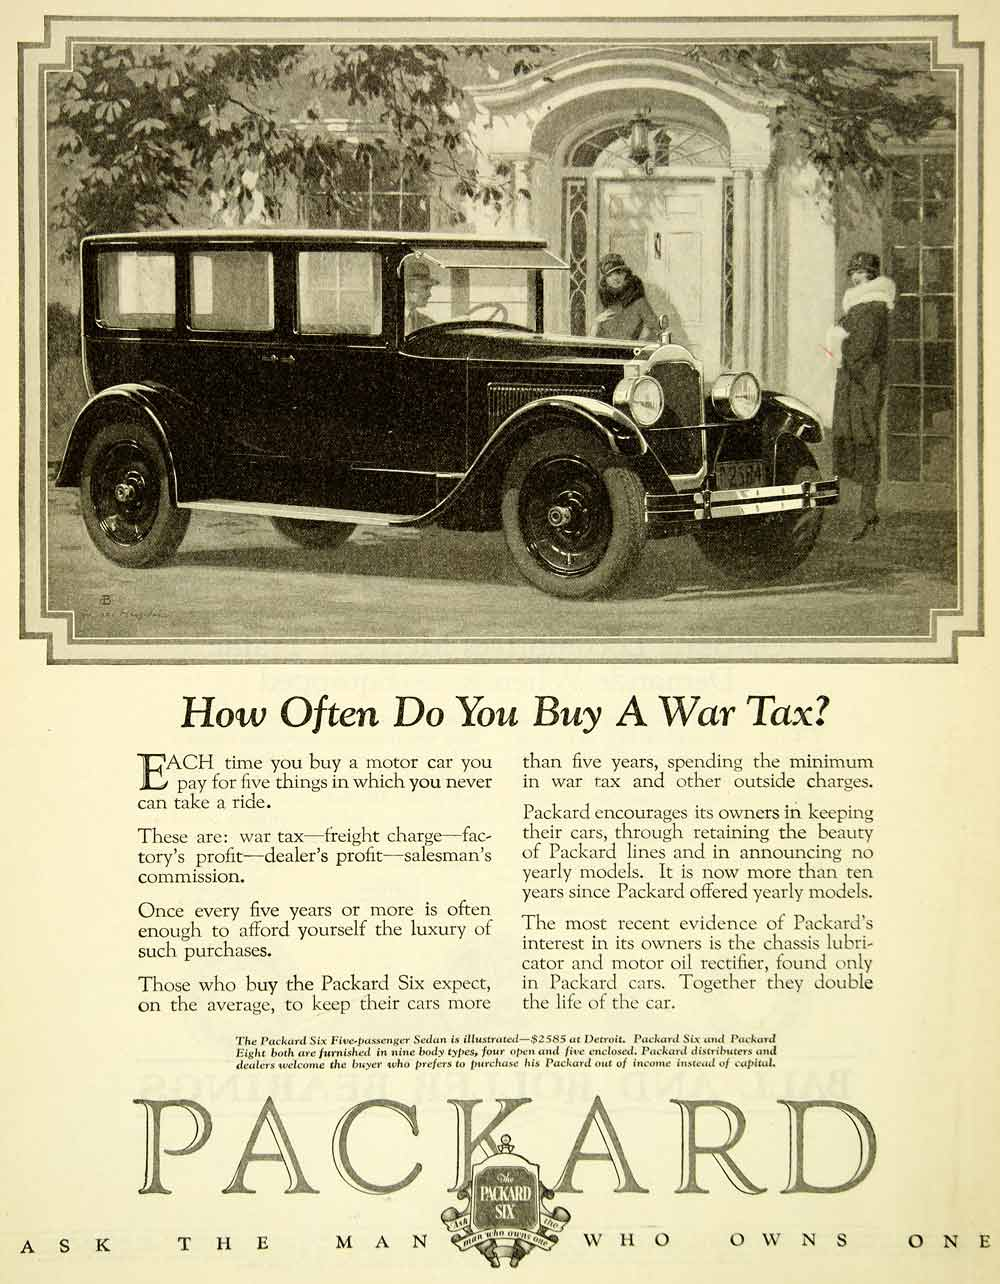 1926 Ad Antique Enclosed Packard Six Sedan Automobile Vehicle Motor Car SCA5